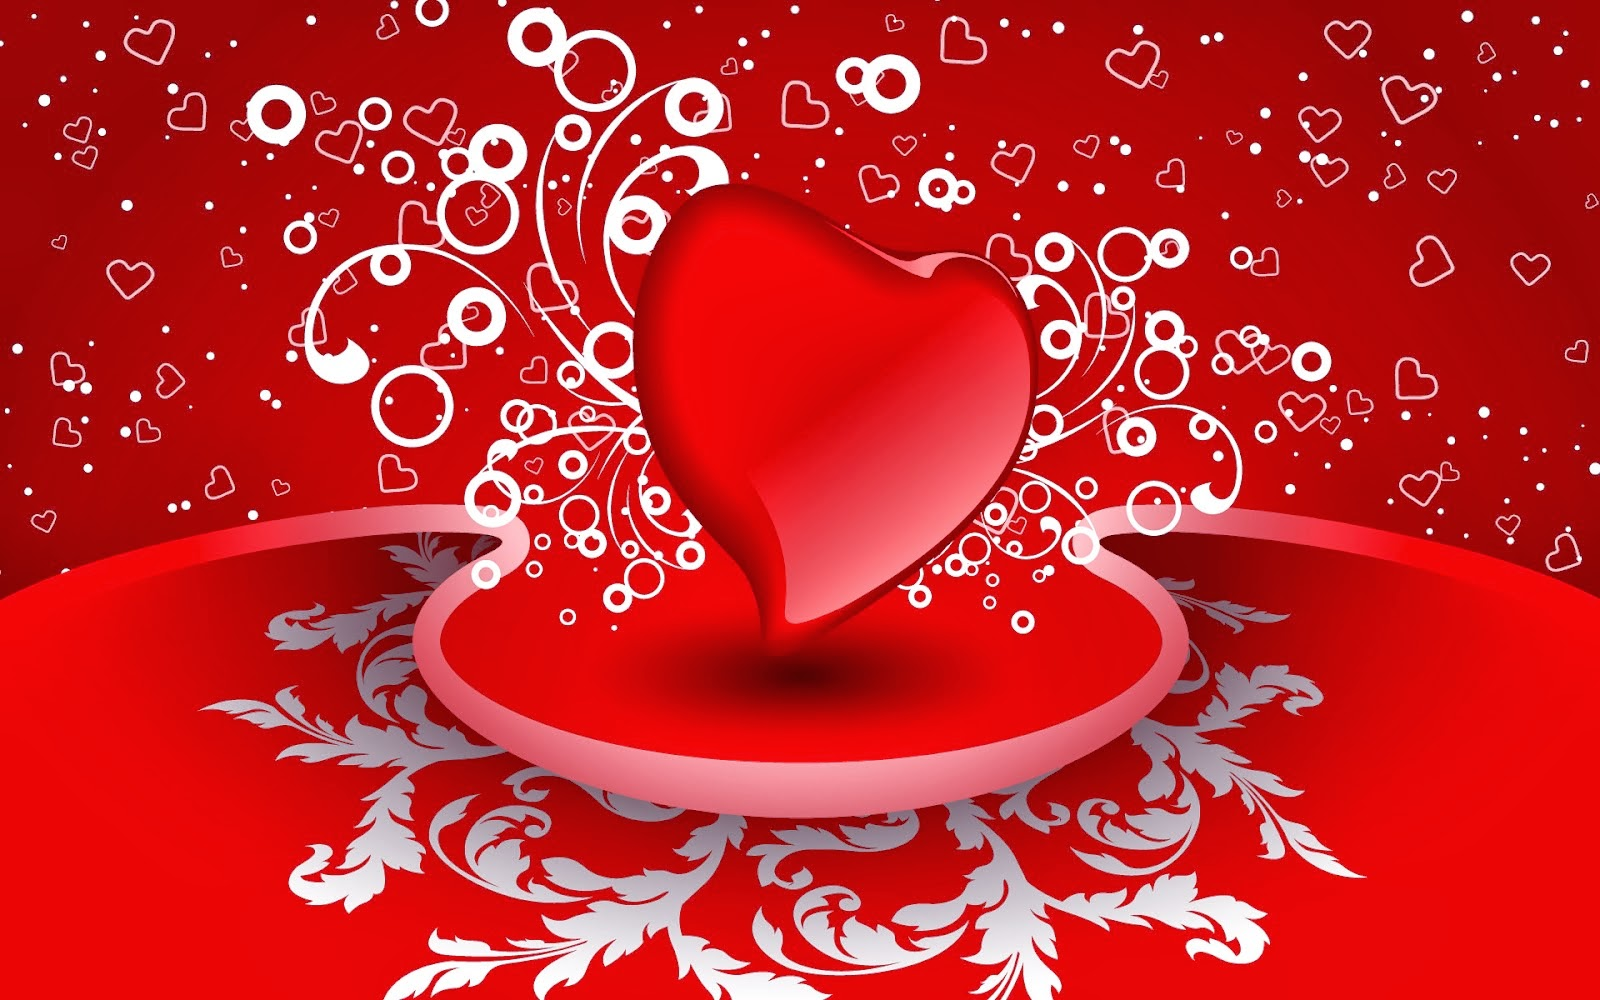 Beautiful Wallpapers and Images Valentine day wallpaper 1600x1000